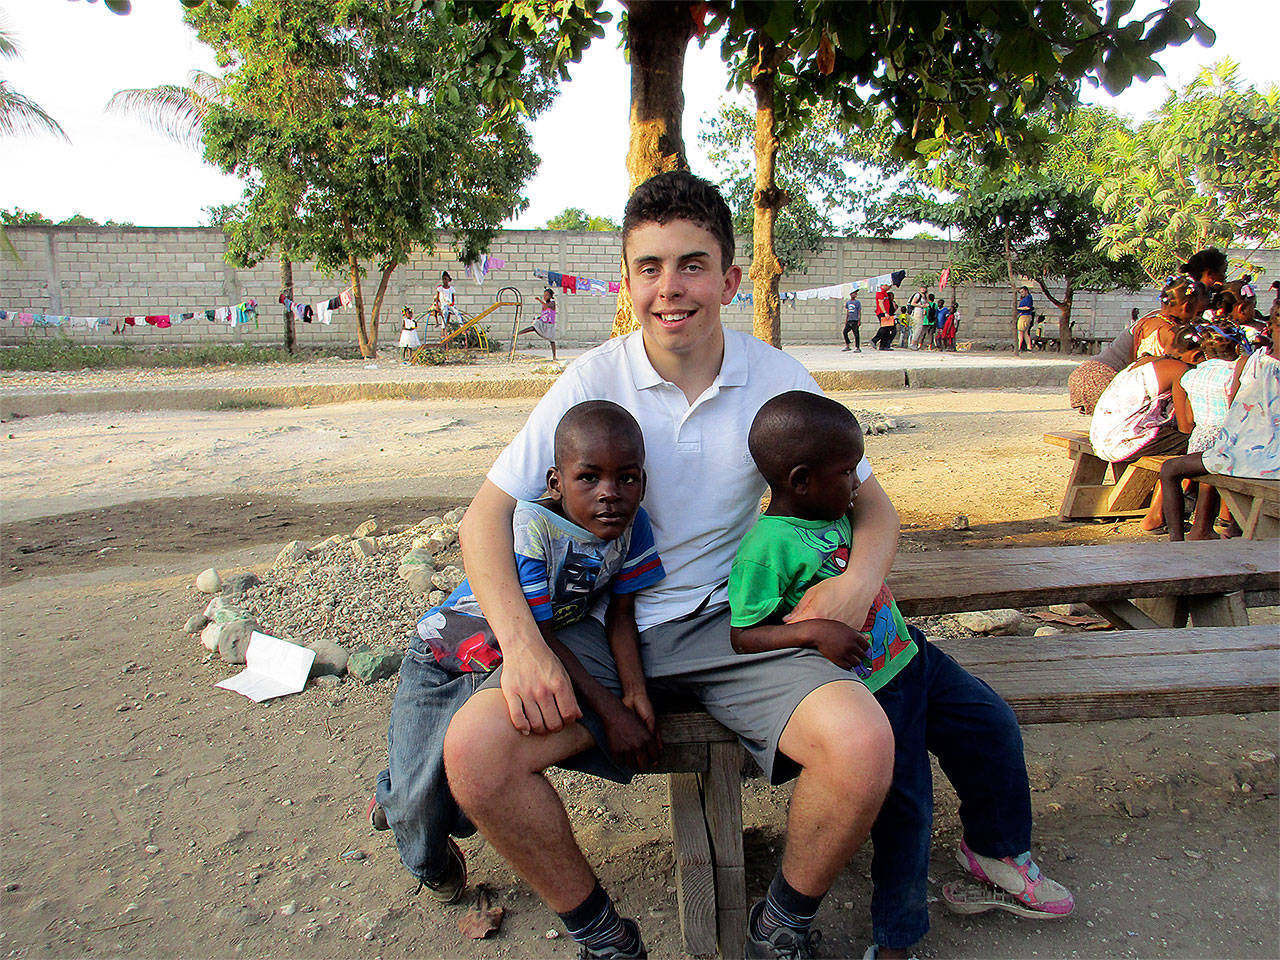 Snohomish High School senior Landon Strickland hangs out with some of the kids at a Haiti orphanage, among the spots he and eight other teens visited over their spring break for a service trip to deliver meals. (Contributed photo)